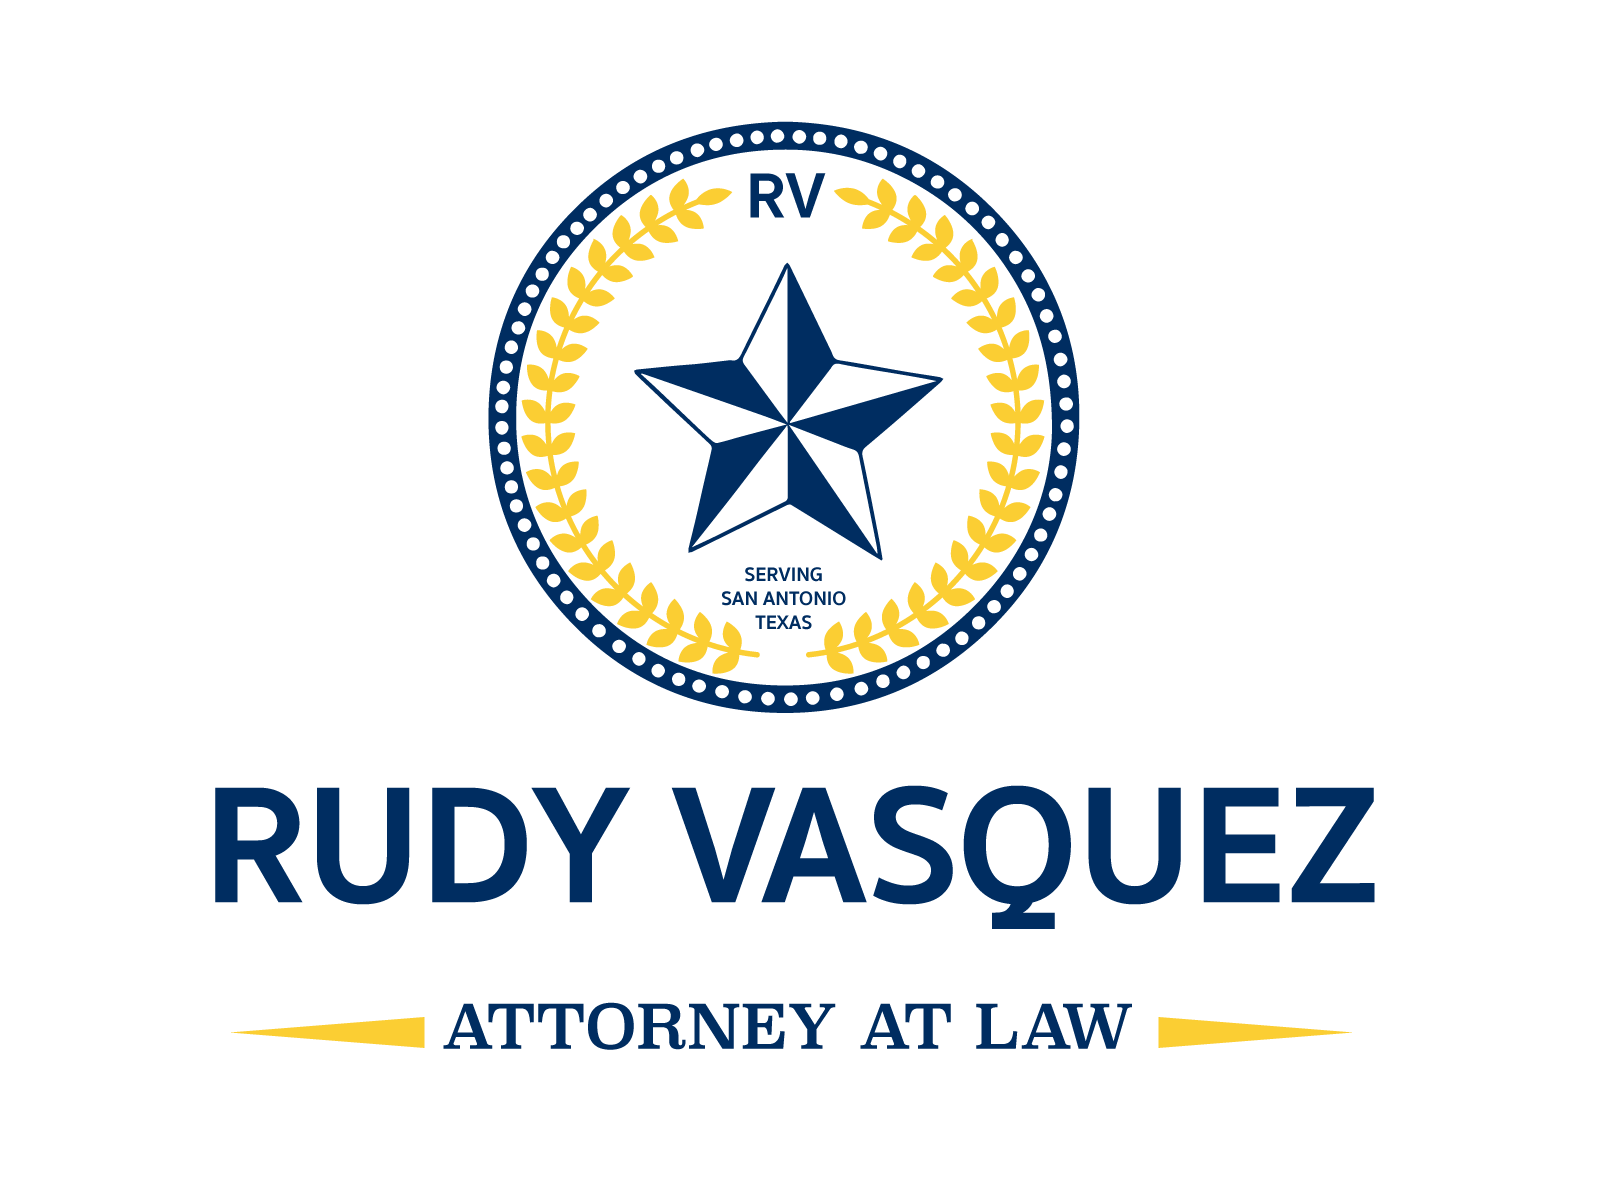 Law Offices of Rudy Vasquez